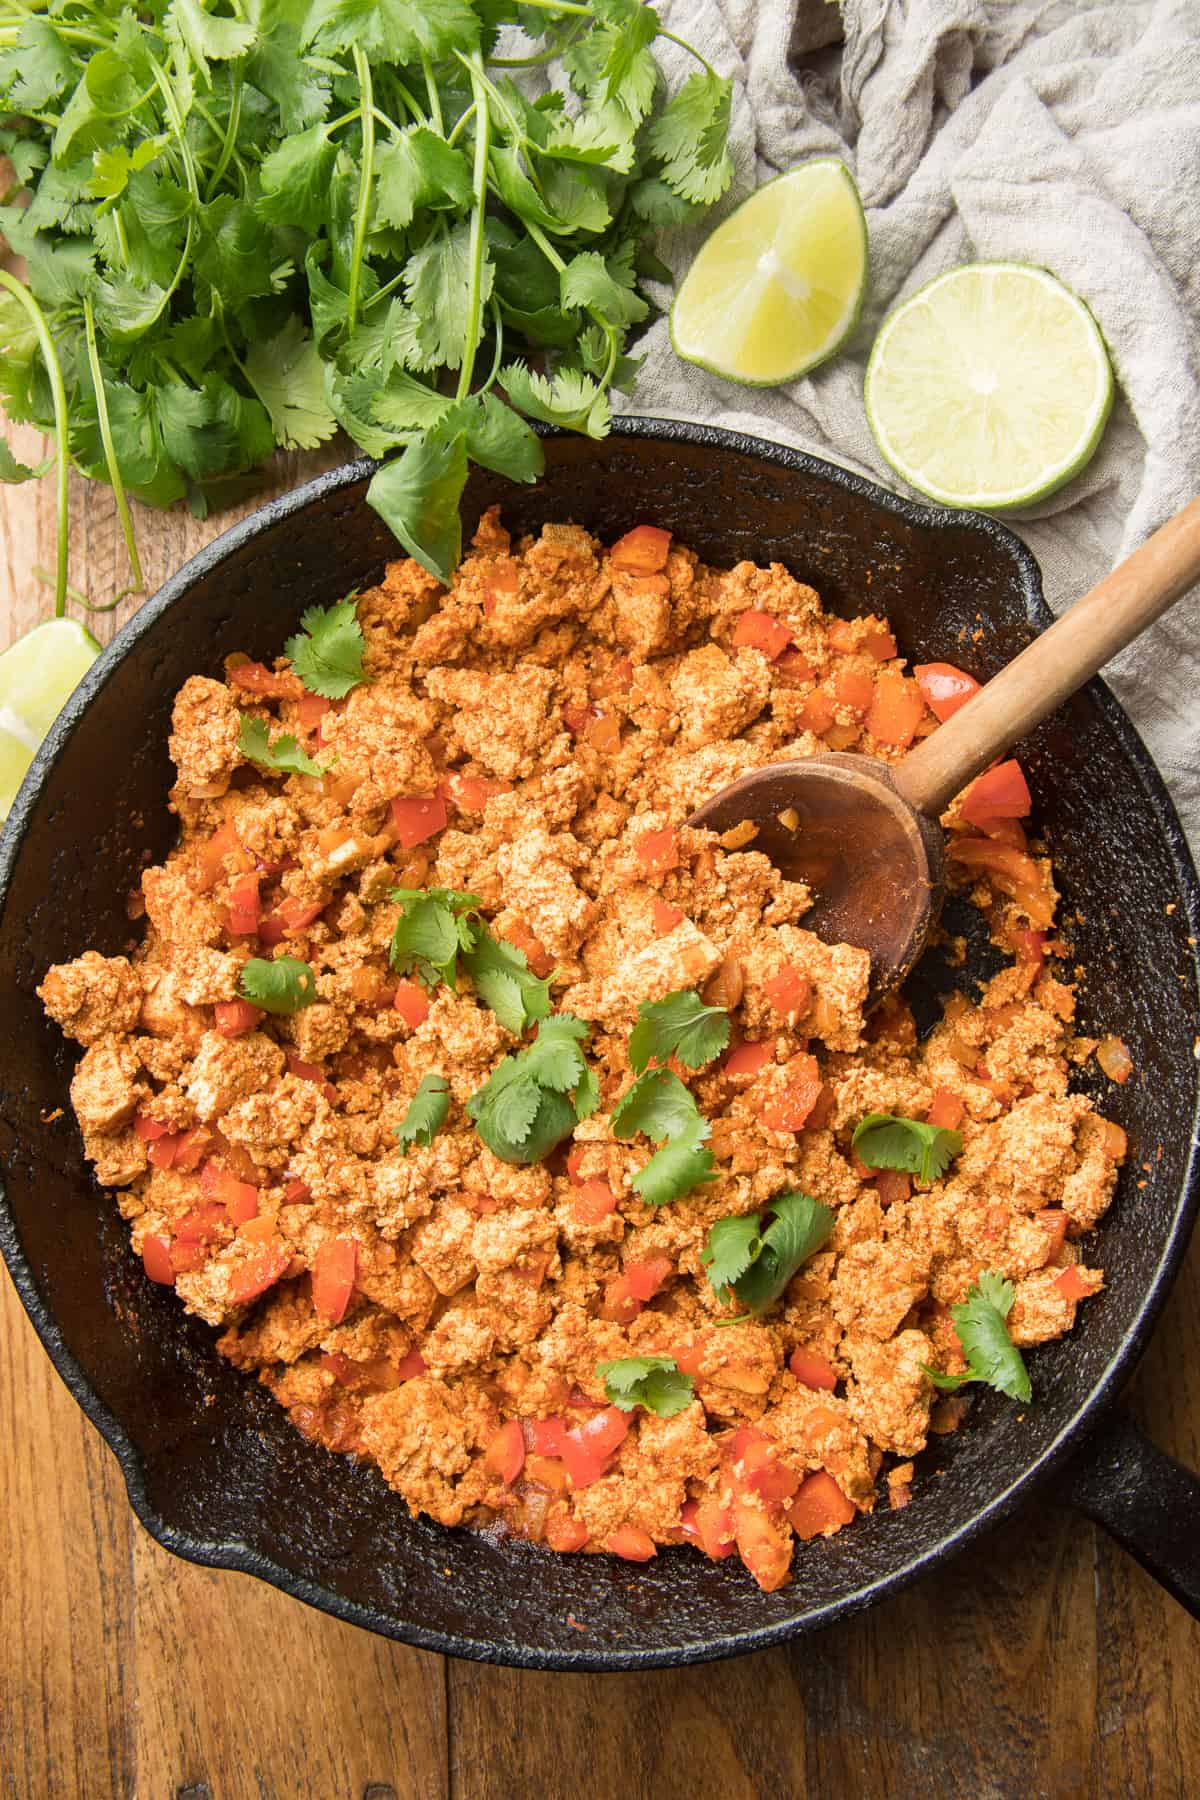 Skillet of Tofu Taco Filling with Wooden Spoon